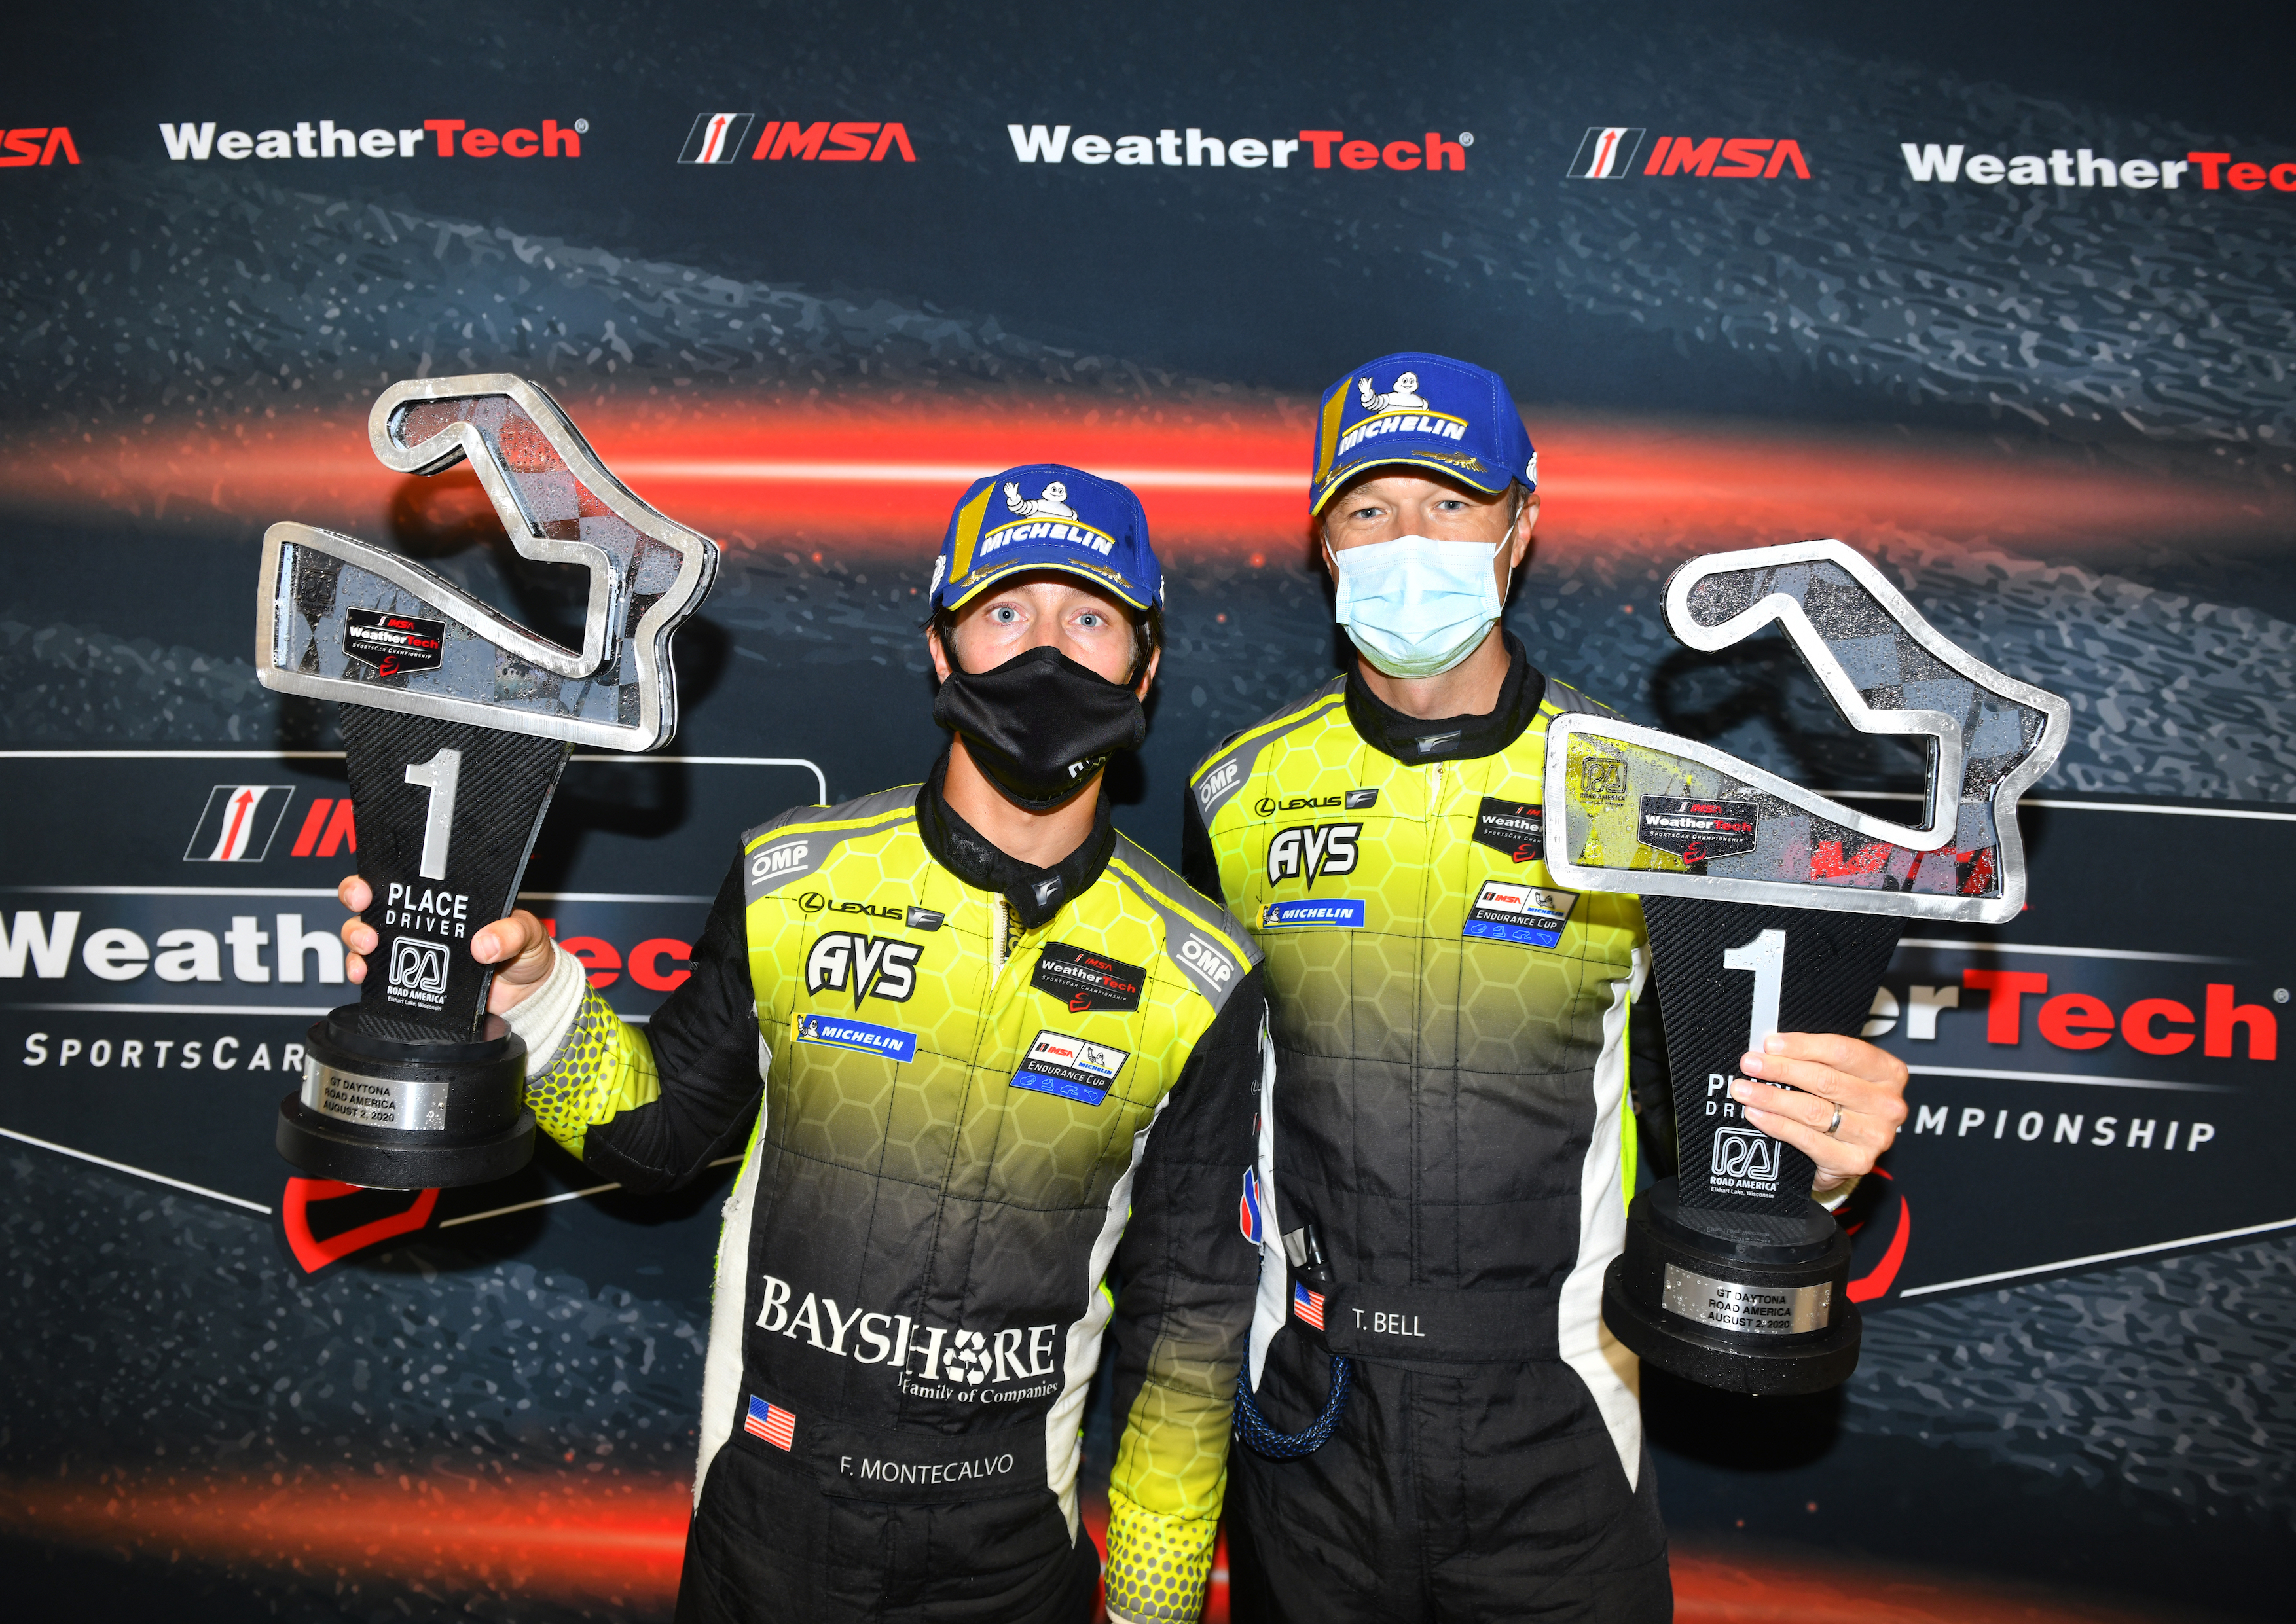 townsend bell frankie montecalvo victorious in lexus rc f gt3 at road america lexus usa newsroom townsend bell frankie montecalvo victorious in lexus rc f gt3 at road america lexus usa newsroom